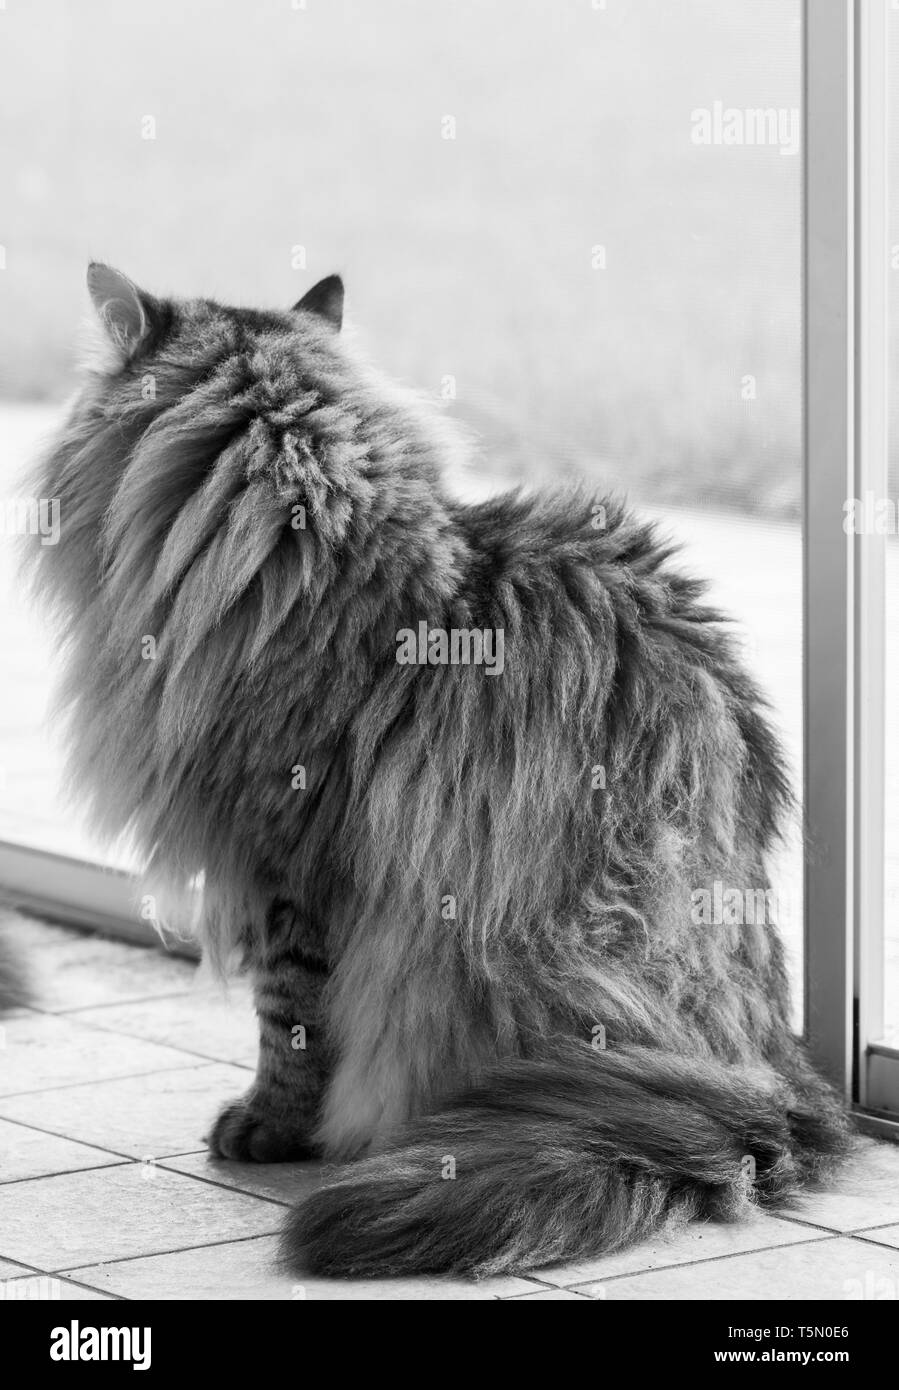 Long haired cat of siberian breed outdoor in relax - Stock Image